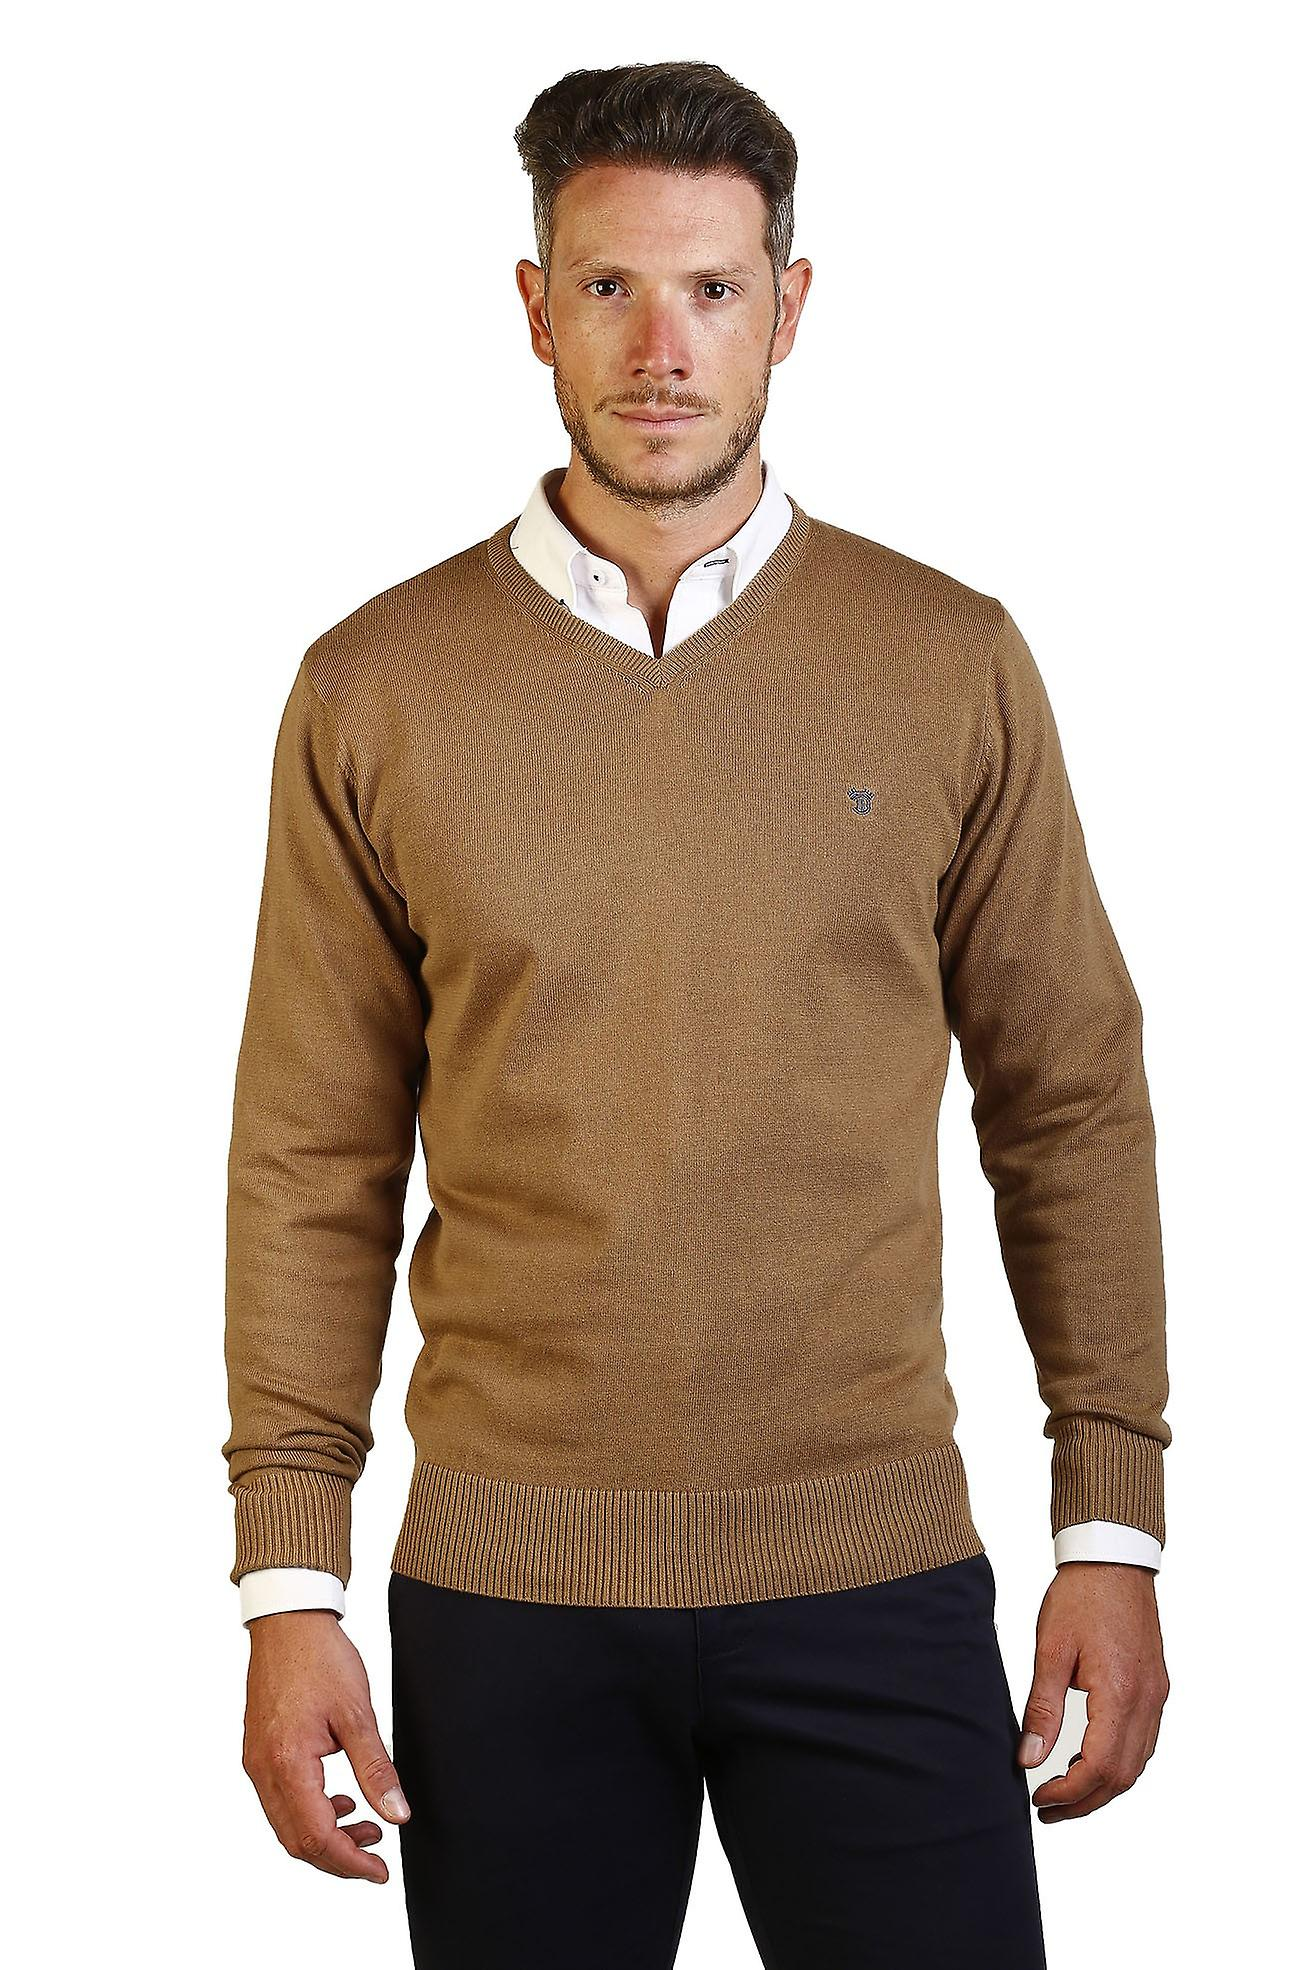 Jersey Men Neck Peak The Time Of Bocha JI1JPICO-Camel 740